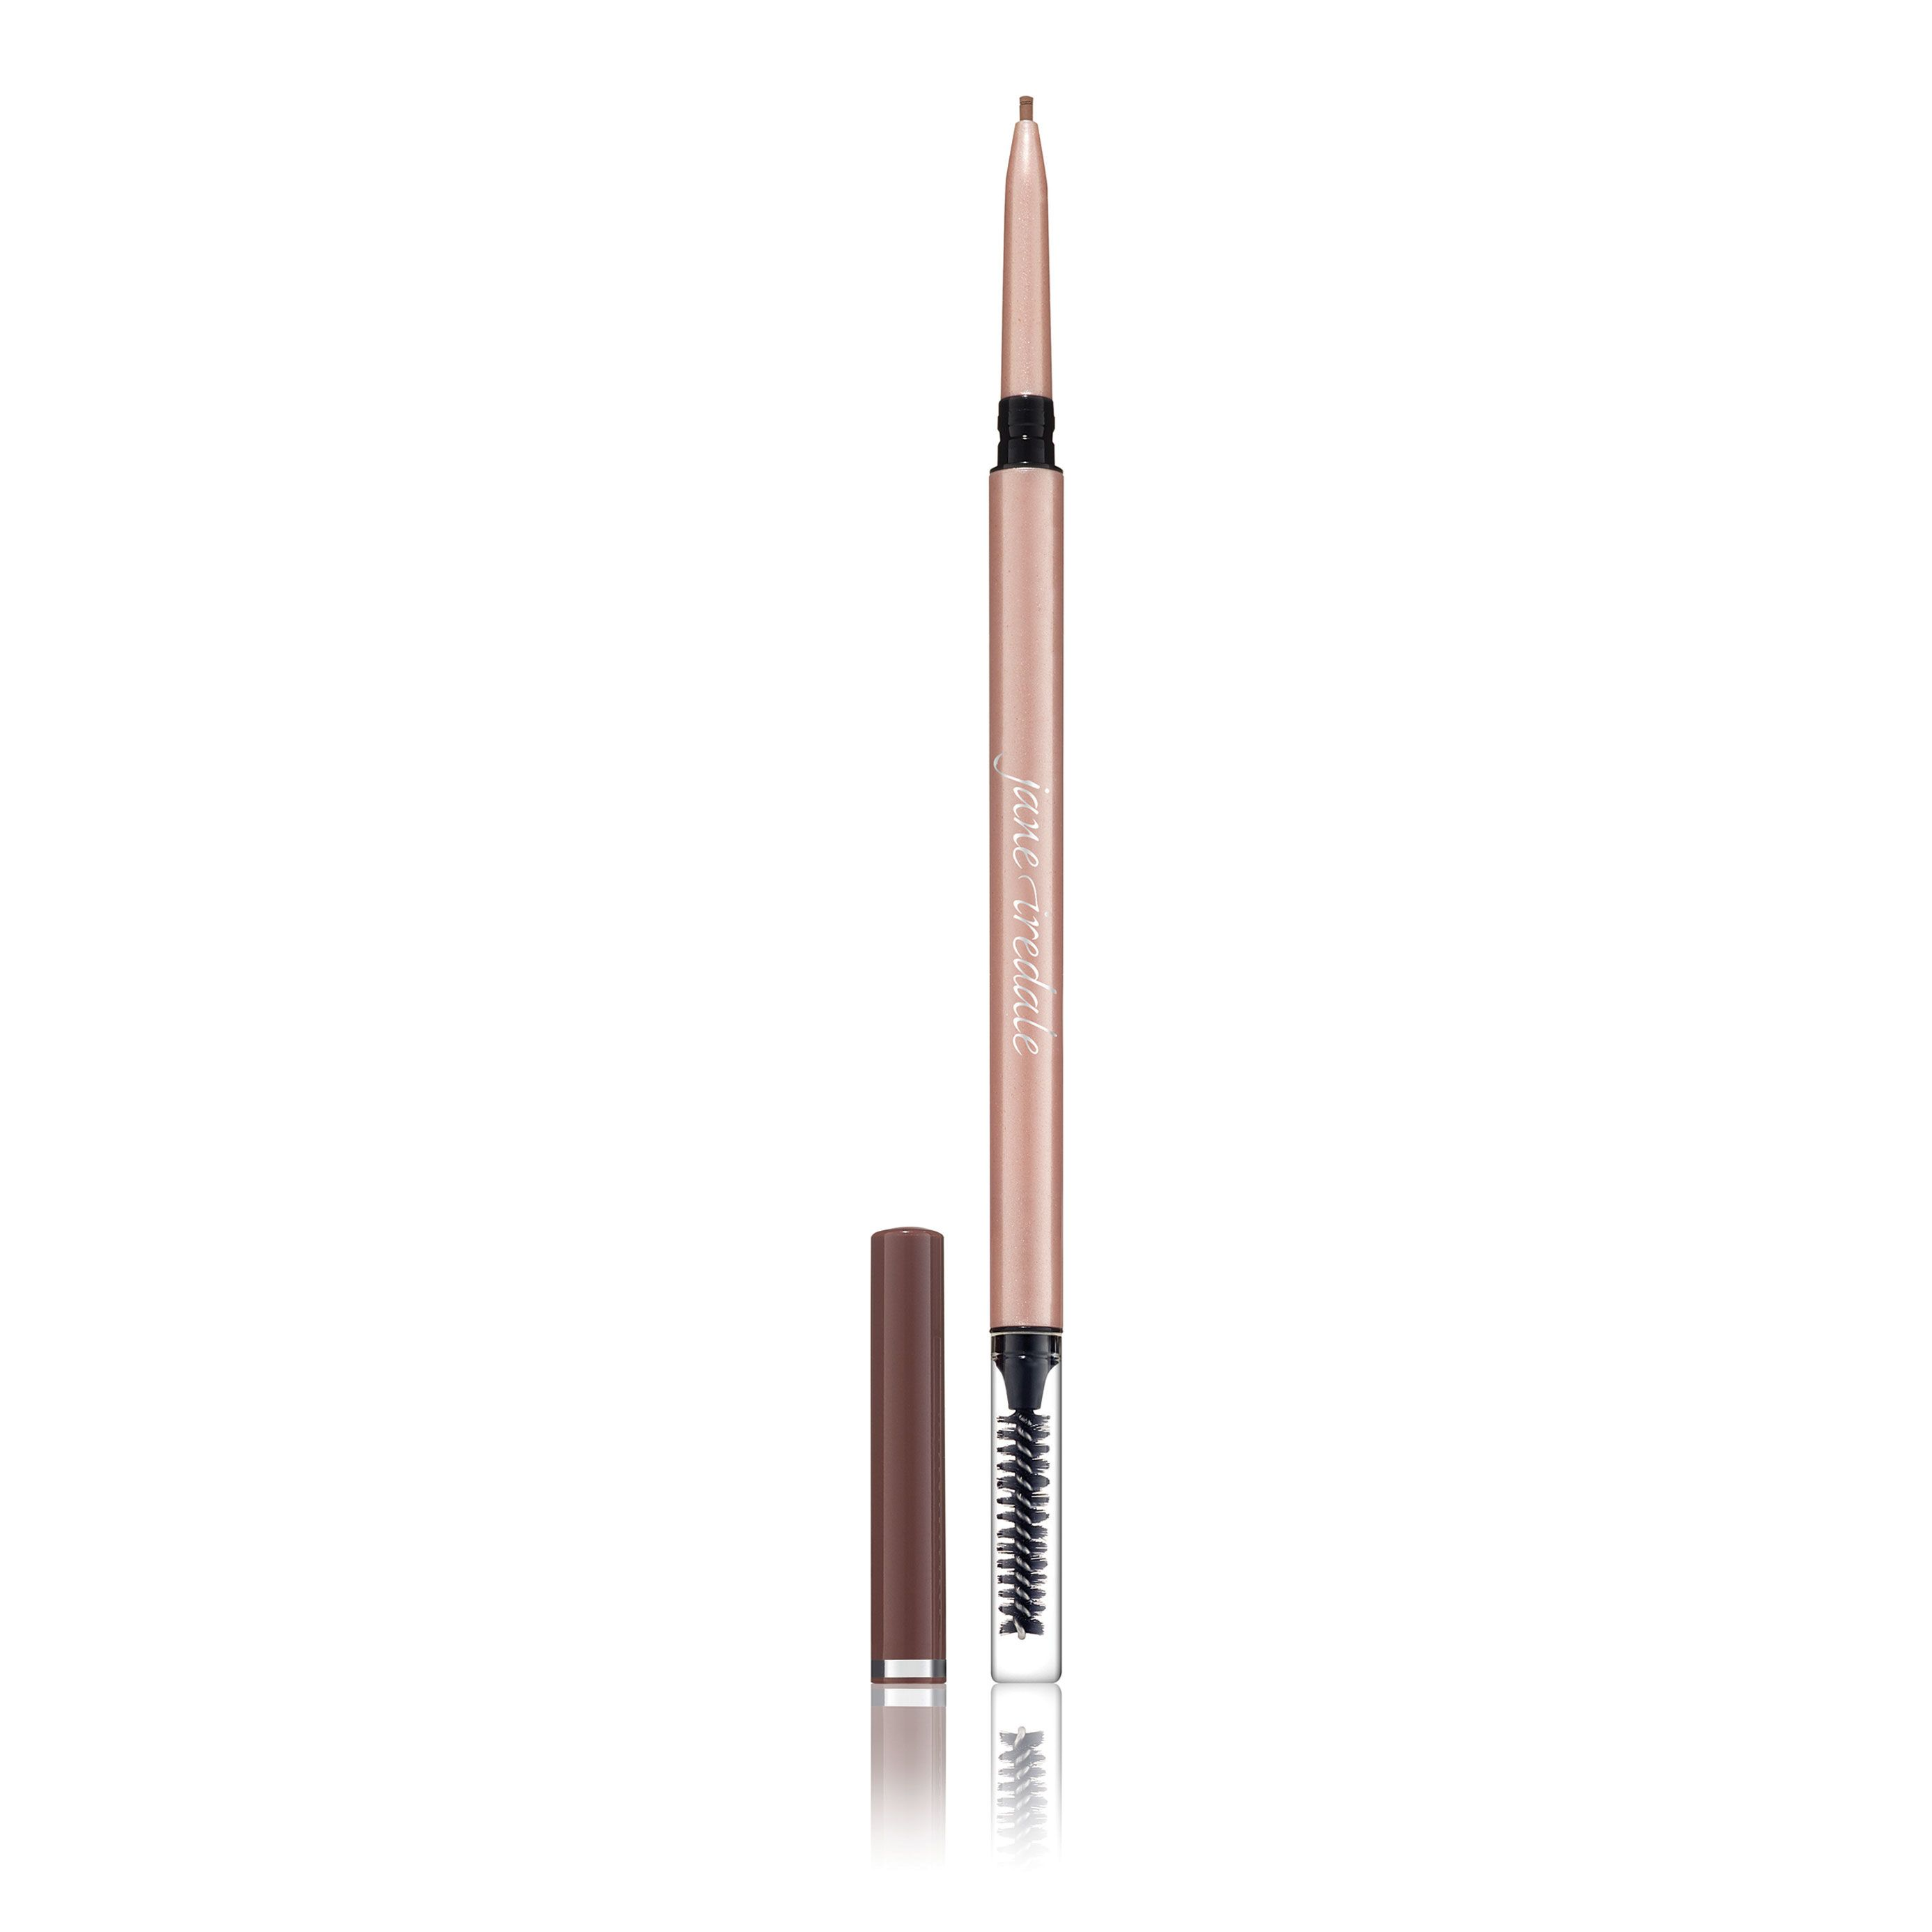 Retractable Brow Pencil Shapping Spoolie Jane Iredale